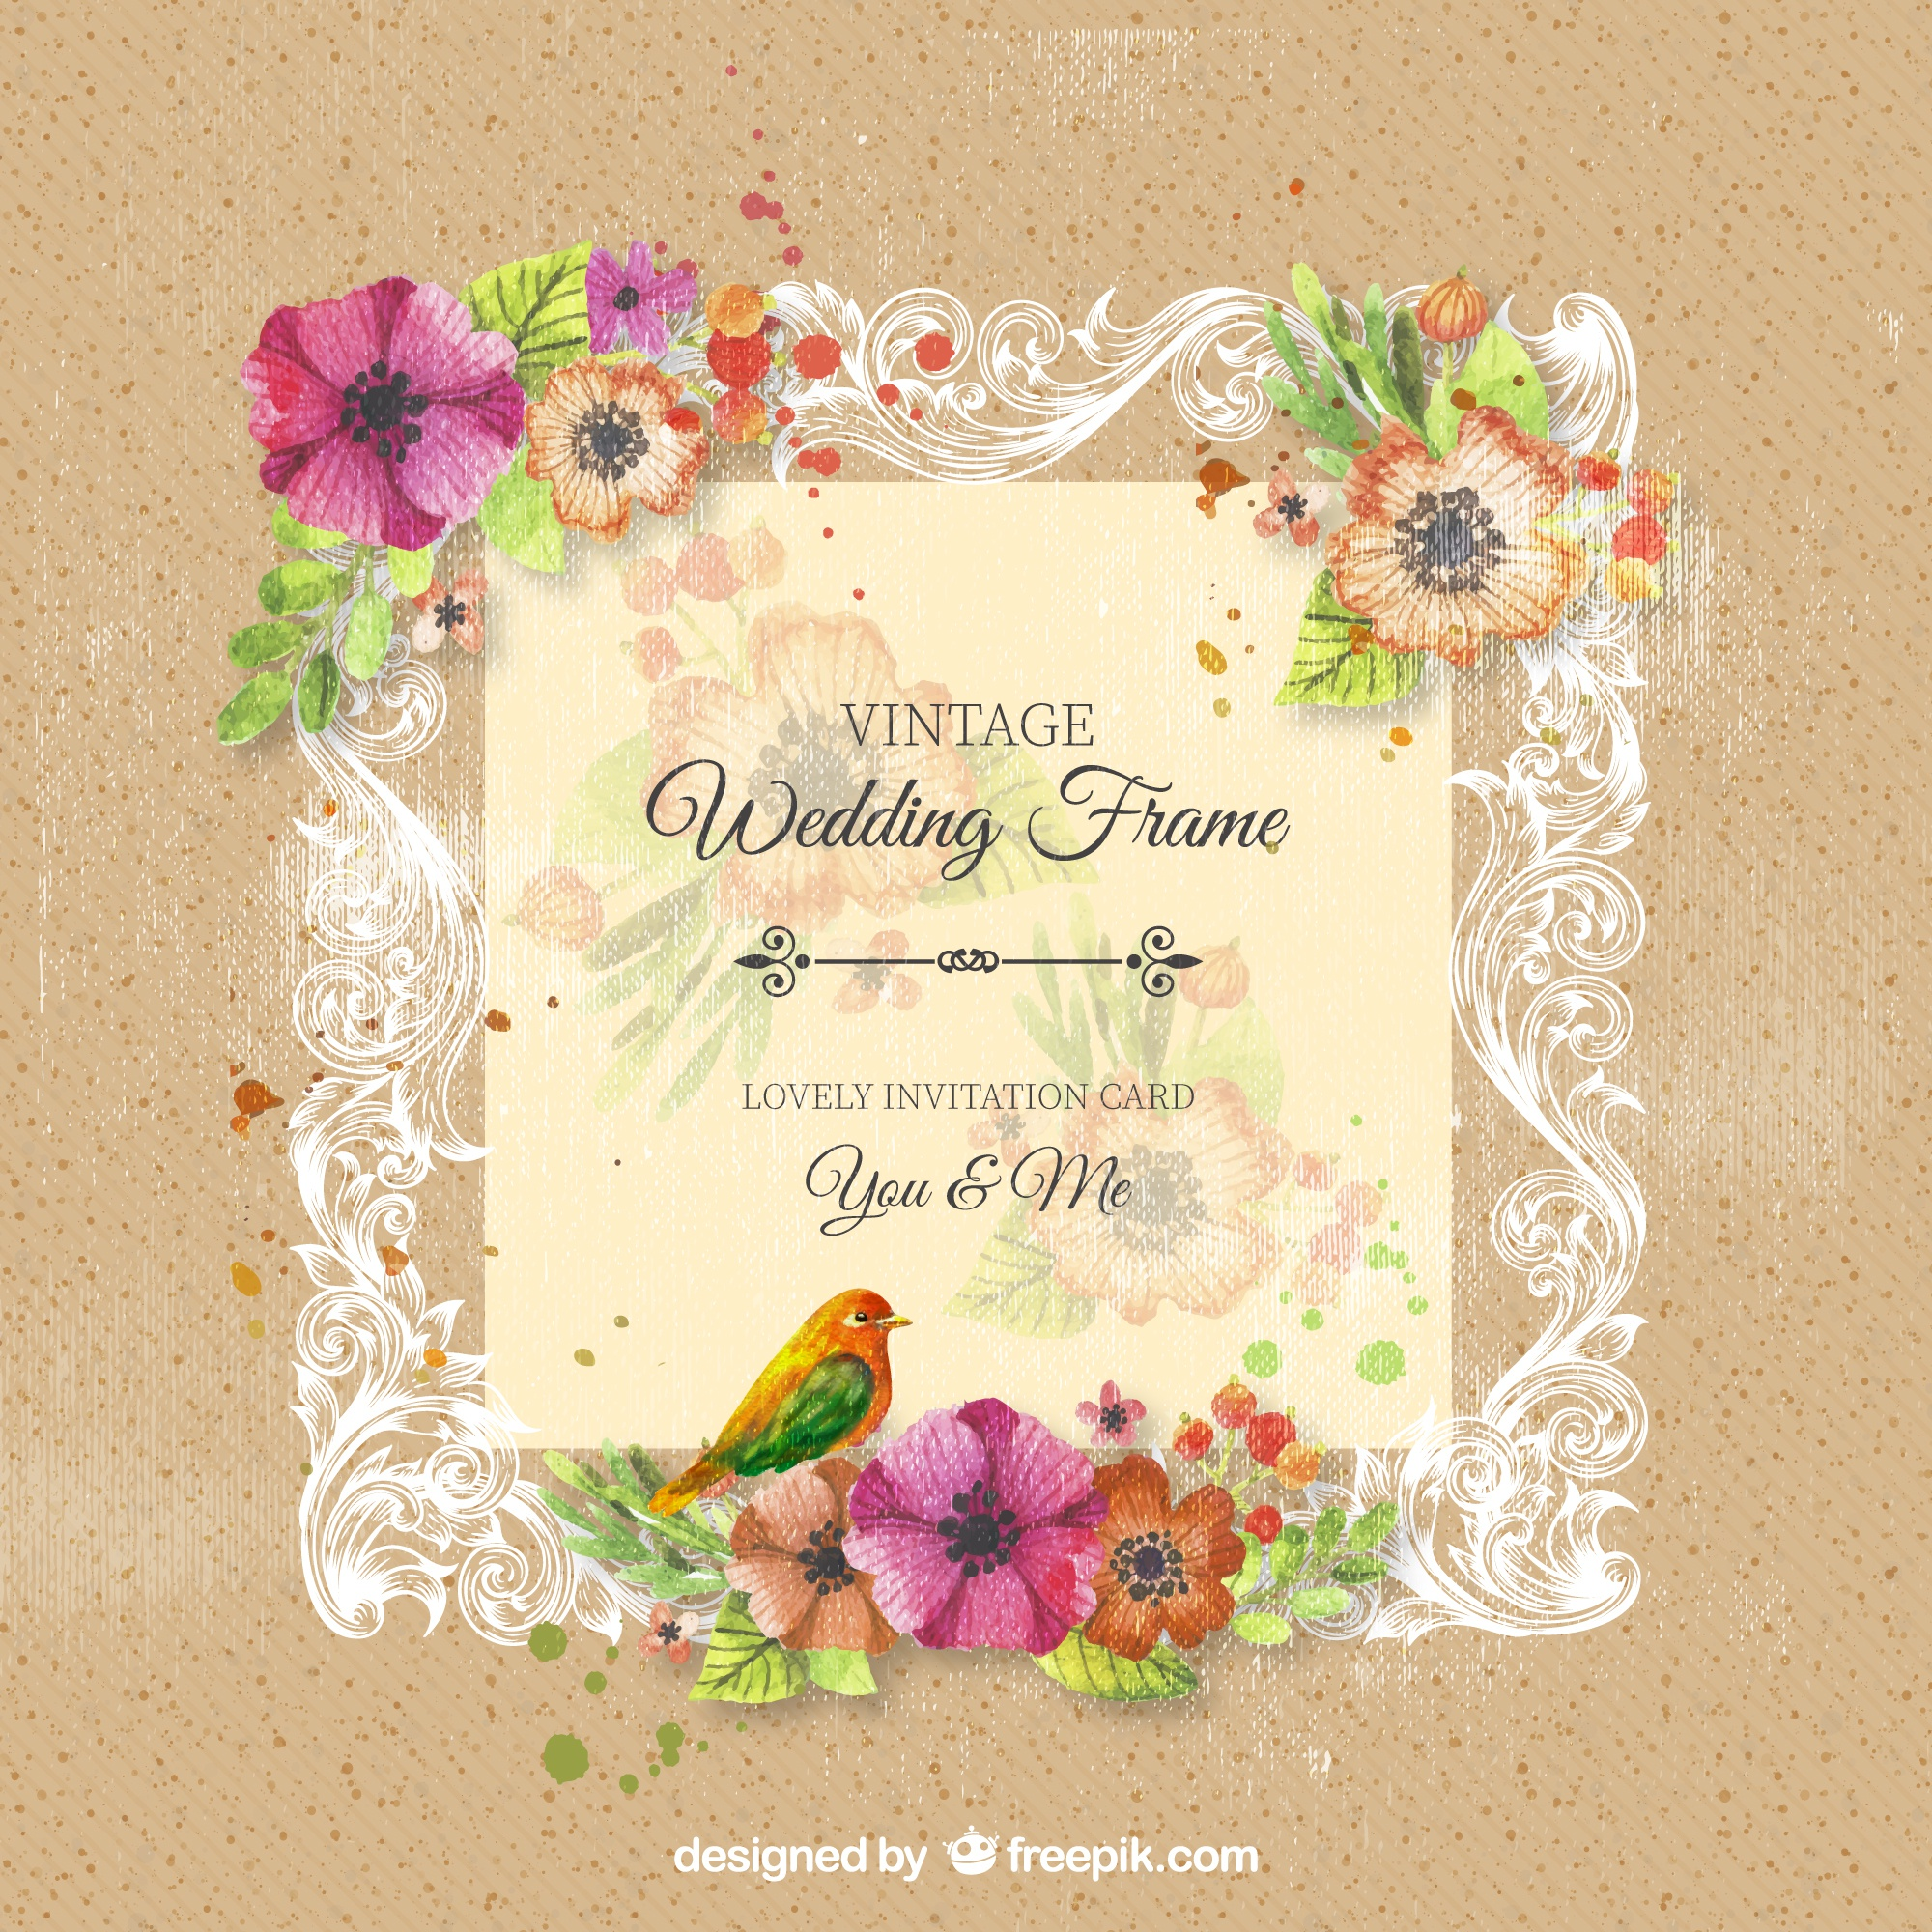 Quadro do casamento ornamental do vintage com flores